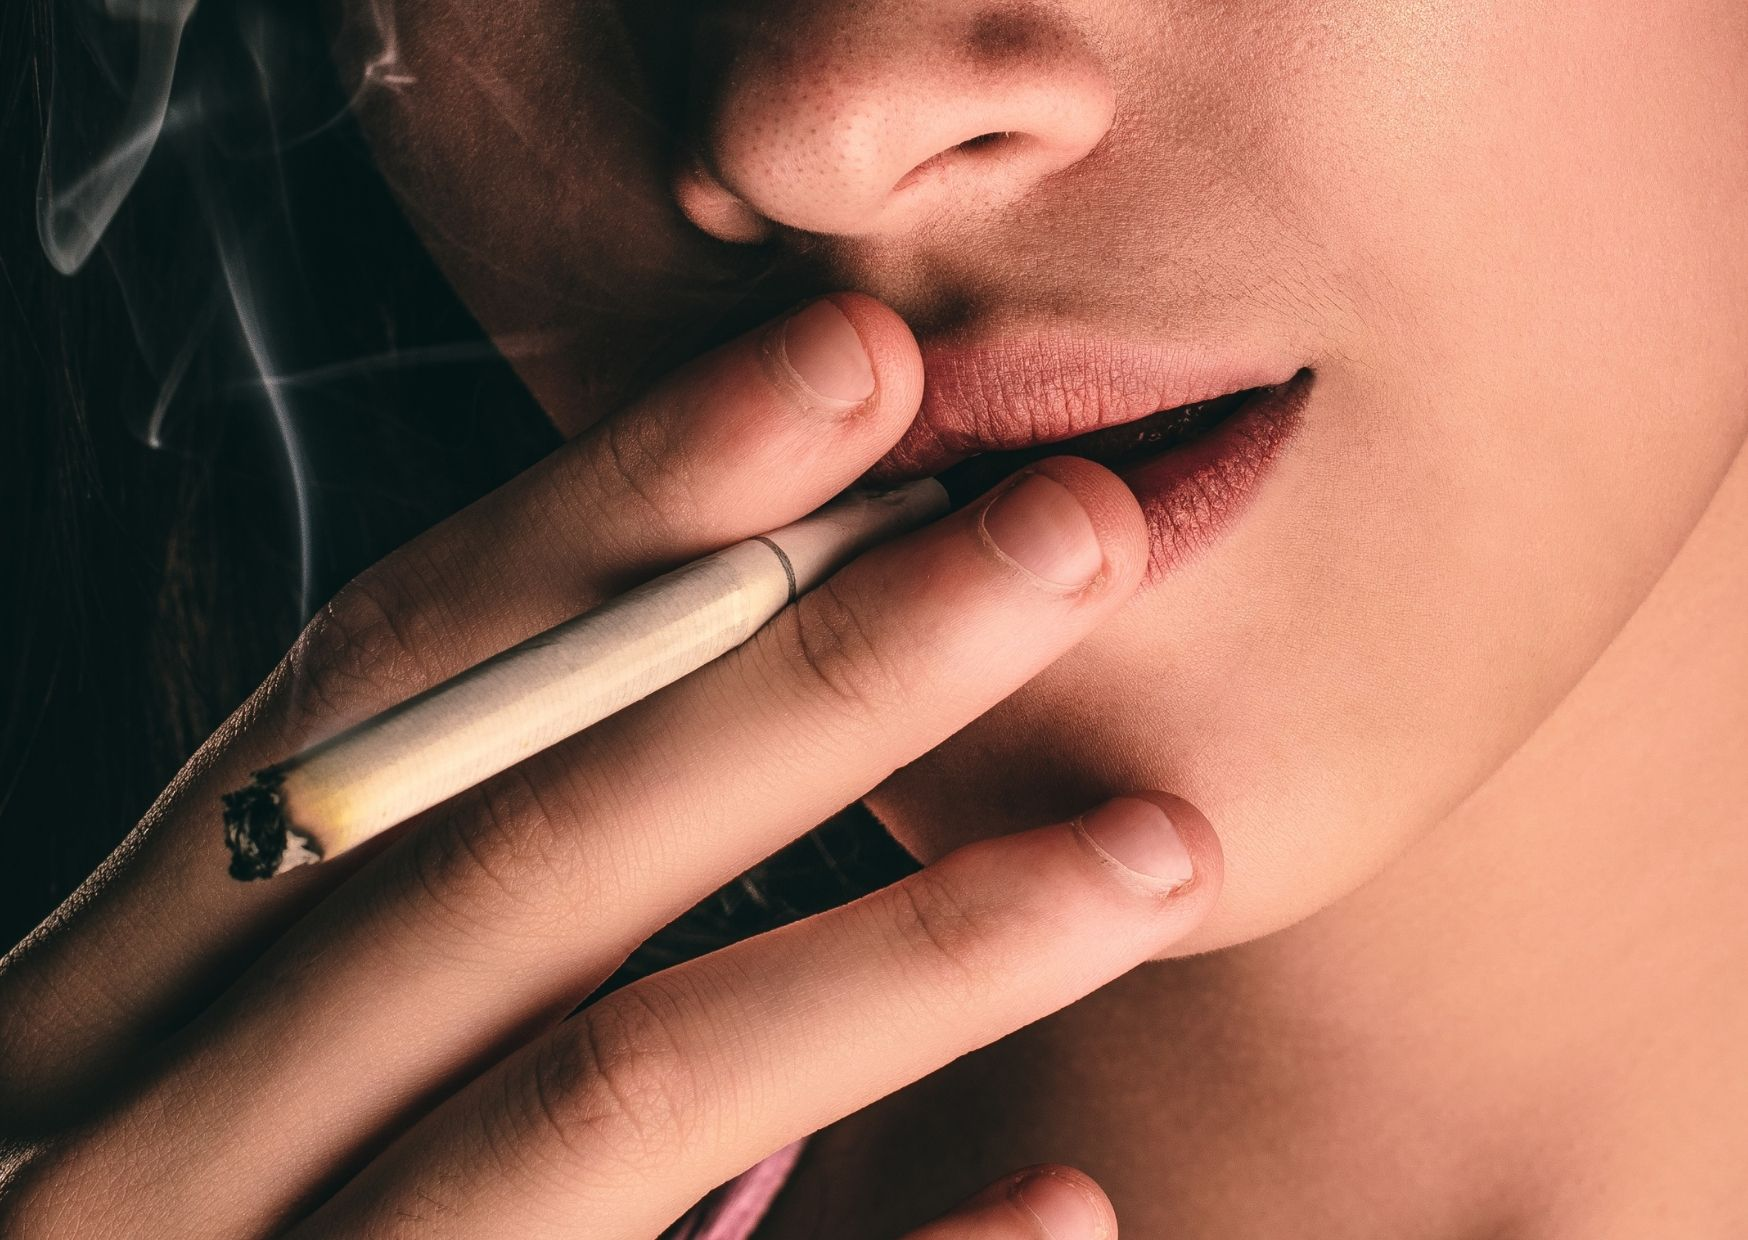 Smoking reduces physical wellbeing